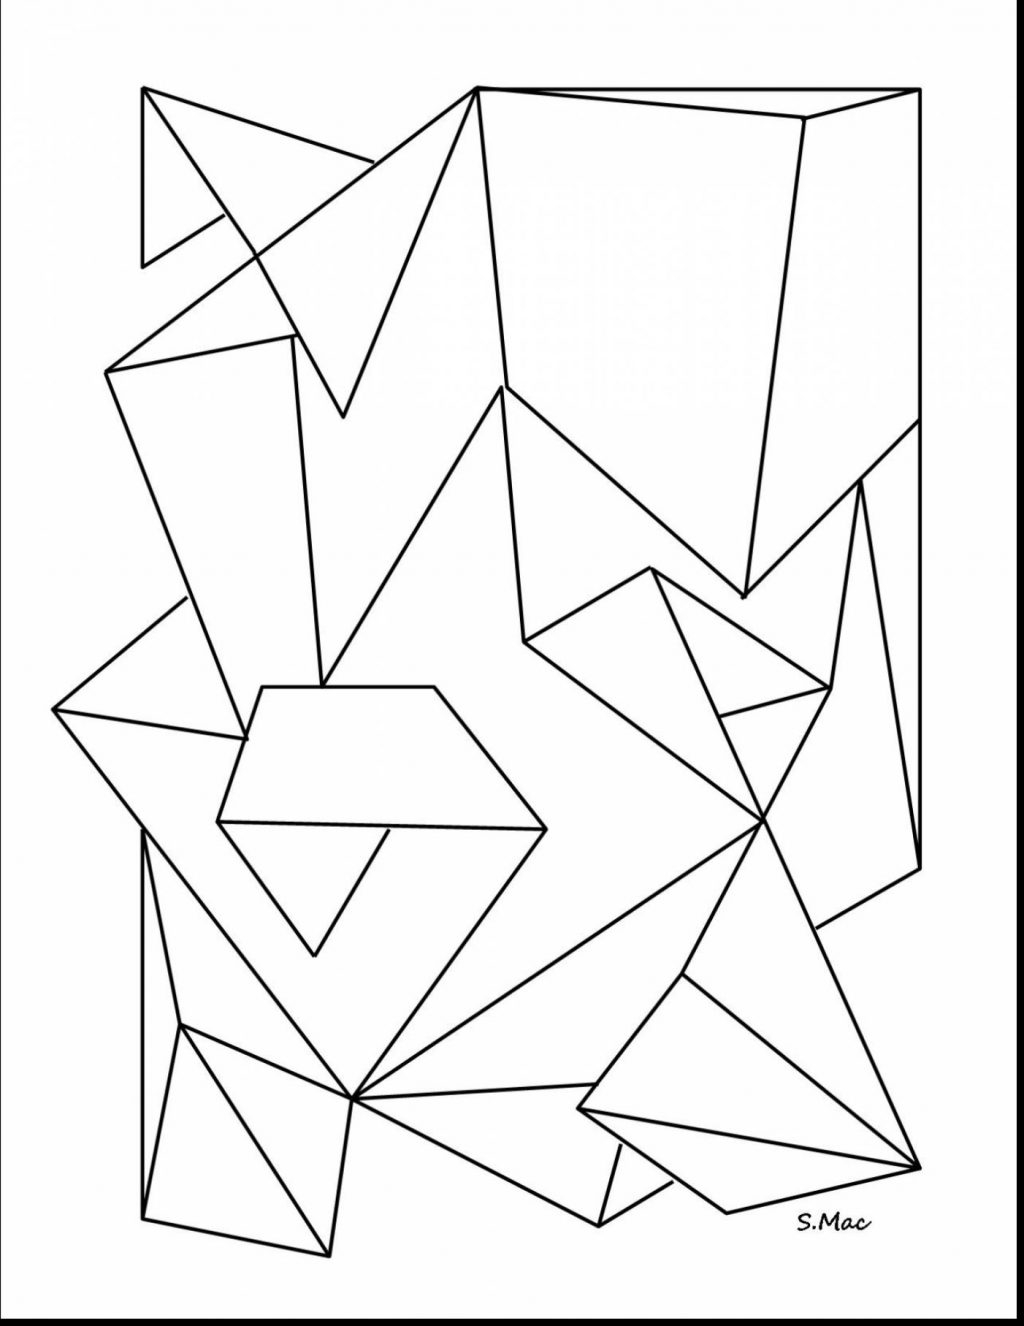 Coloring Book and Pages Classy Geometric Coloring Pages for Adults Collection Of Snowflake Coloring Pages for Adults Coloring Pages Inspiring Printable